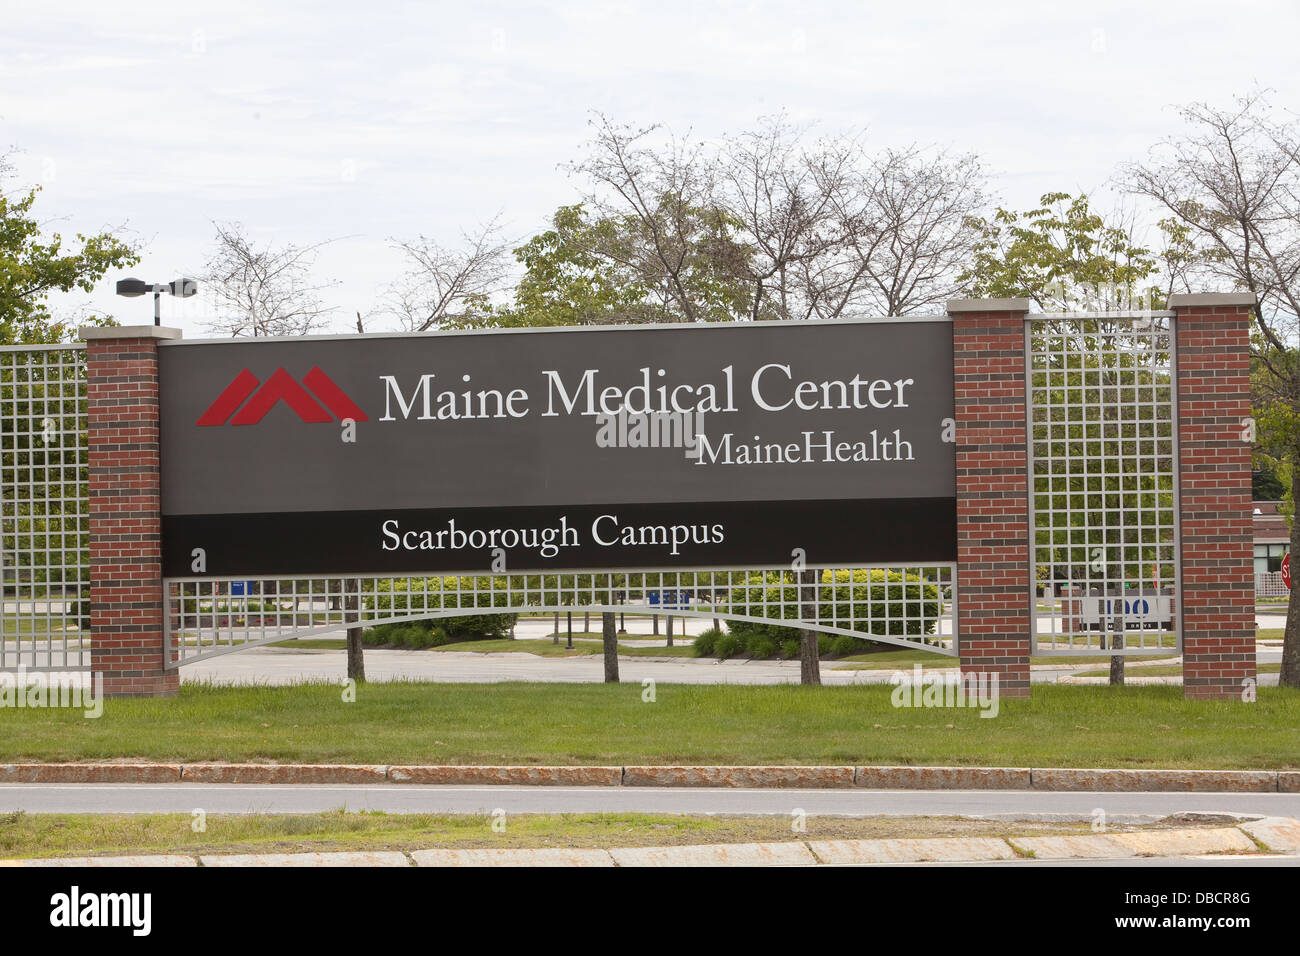 The Scarboroough Campus of the Maine Medical Center is